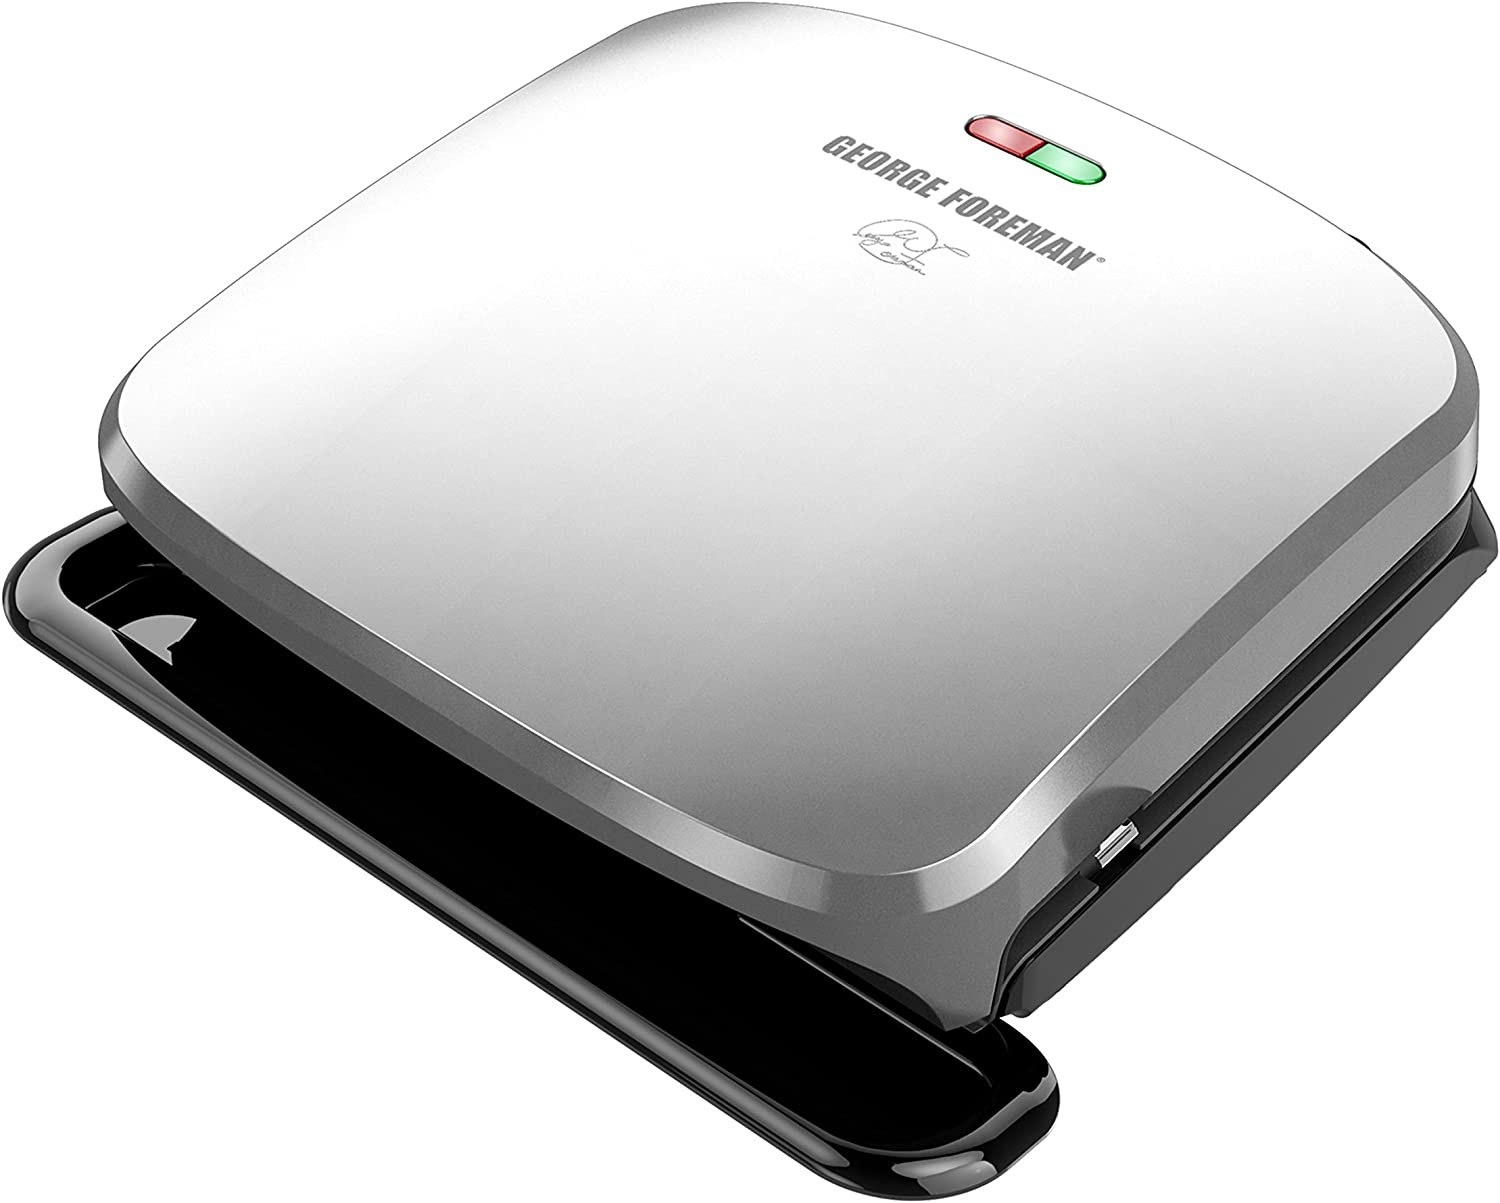 George Foreman Plate Grill review